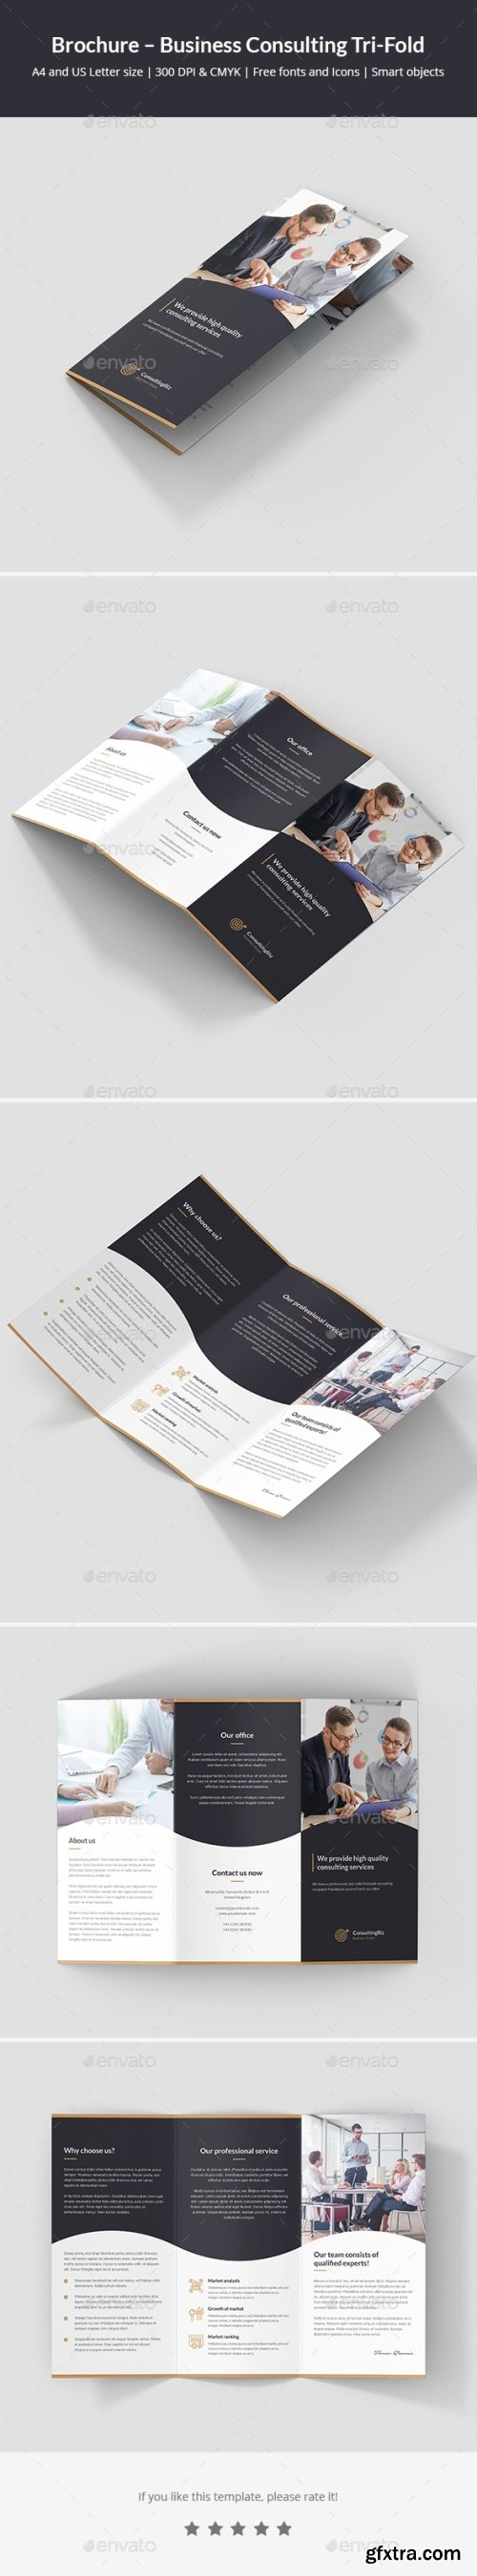 Graphicriver - Brochure - Business Consulting Tri-Fold 22015194